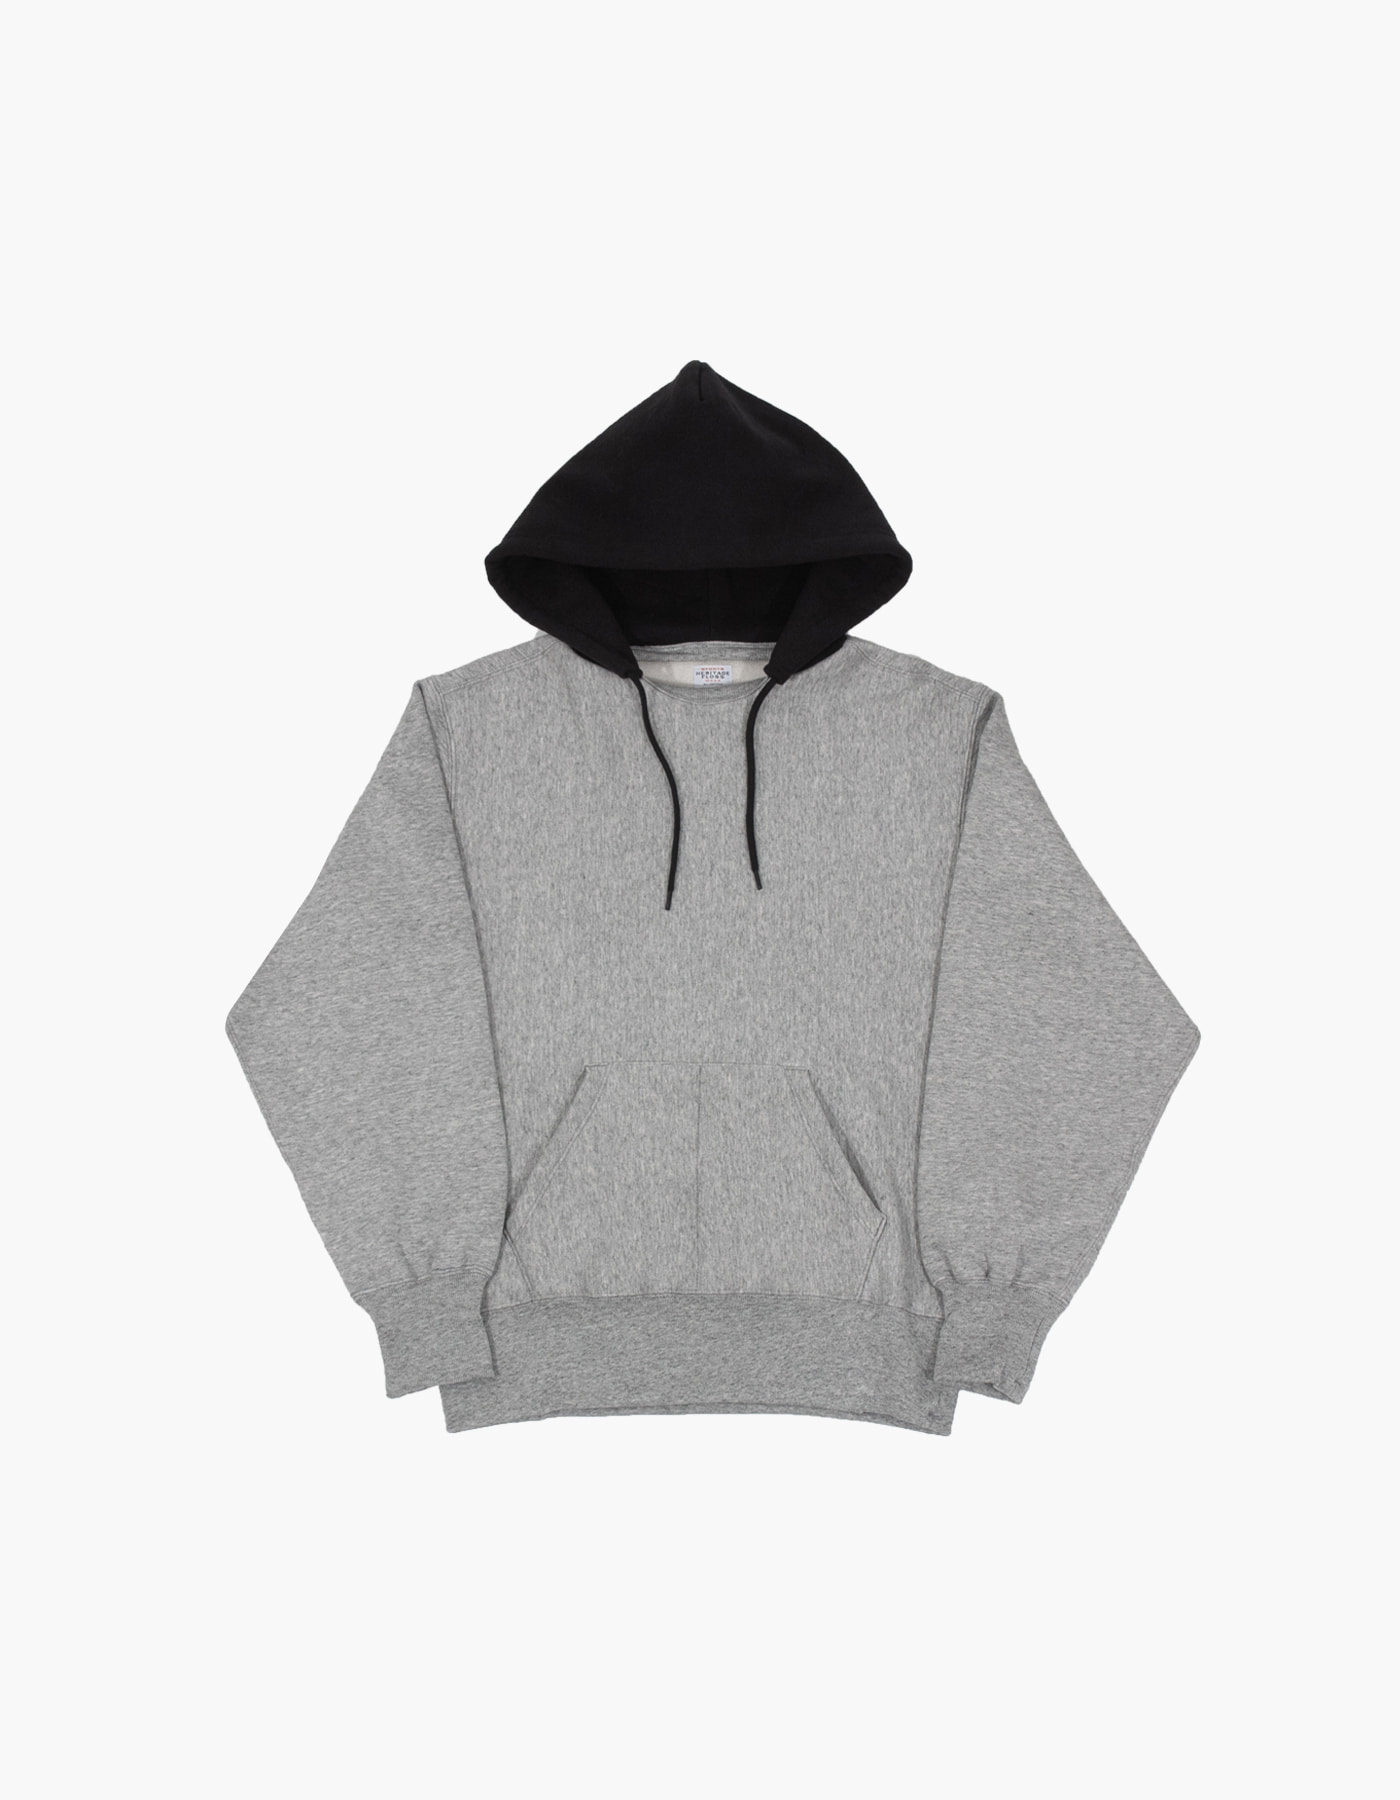 ACS BLOCKED HOODIE / M.GREY-BLACK